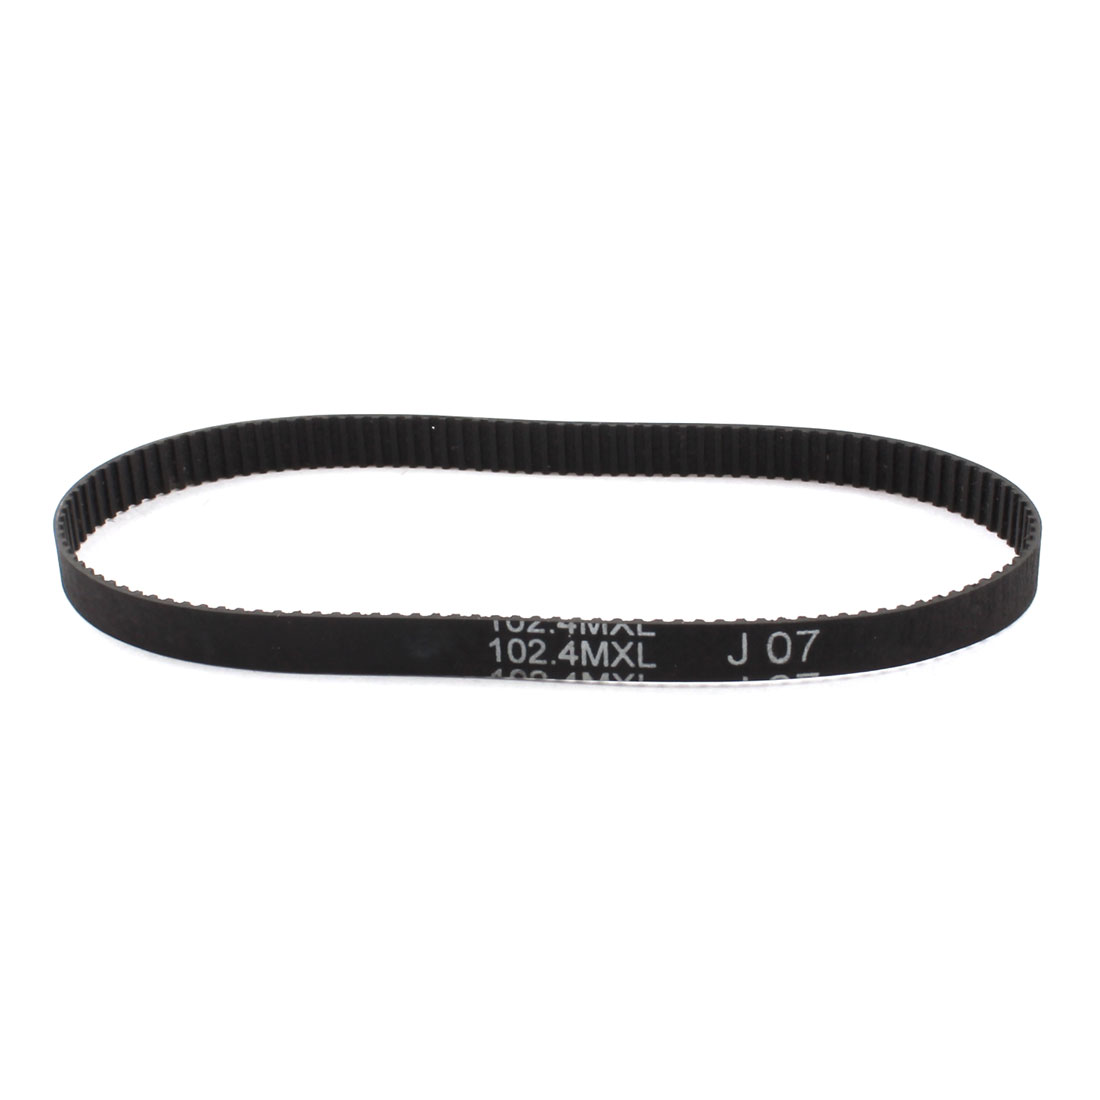 "102.4MXL025 128-Teeth 1/4"" Wide 2.032mm Pitch Black 3D Printer Groove Synchronous Timing Belt 10.24"" Girth"